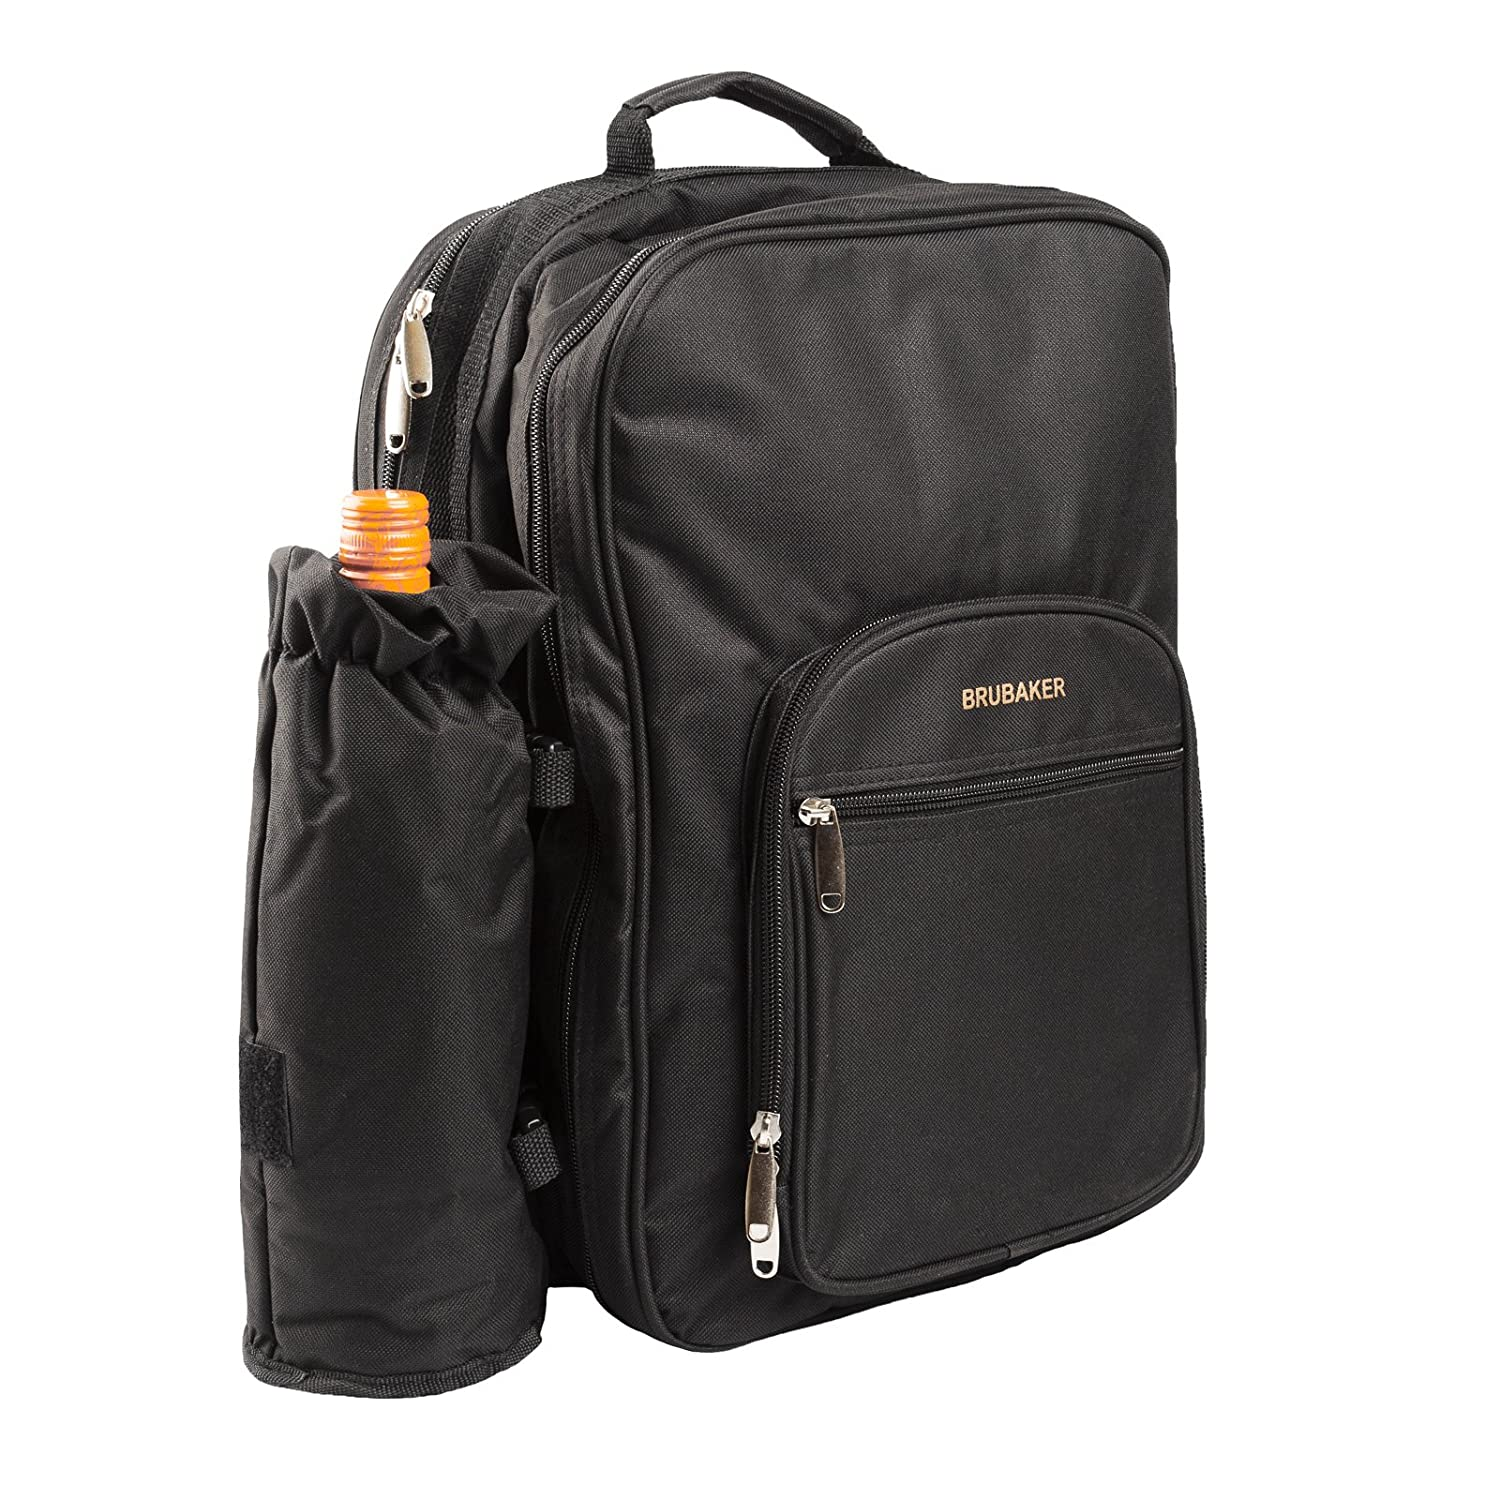 BRUBAKER Picnic Backpack Four Person with Removable Insulated Bottle Holder, Tableware and Plates